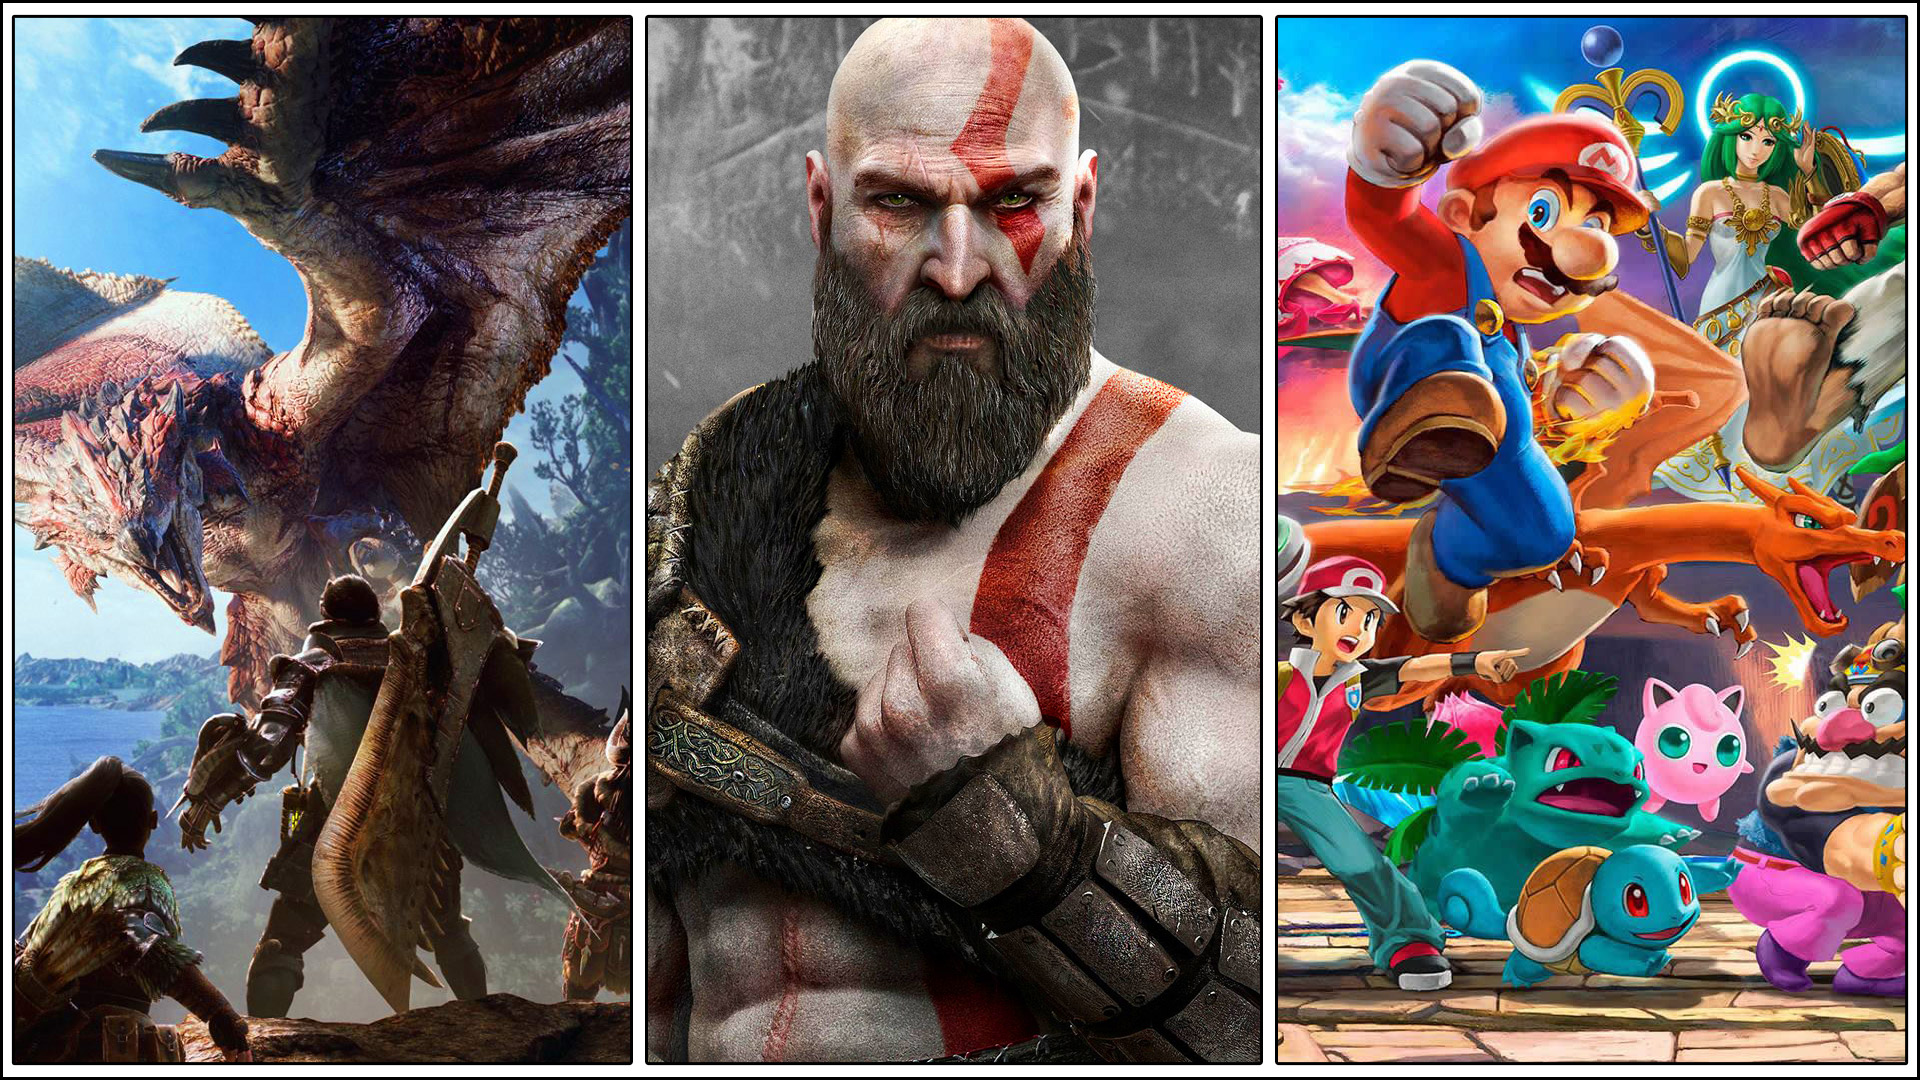 The Best, Worst and Biggest Games of 2018